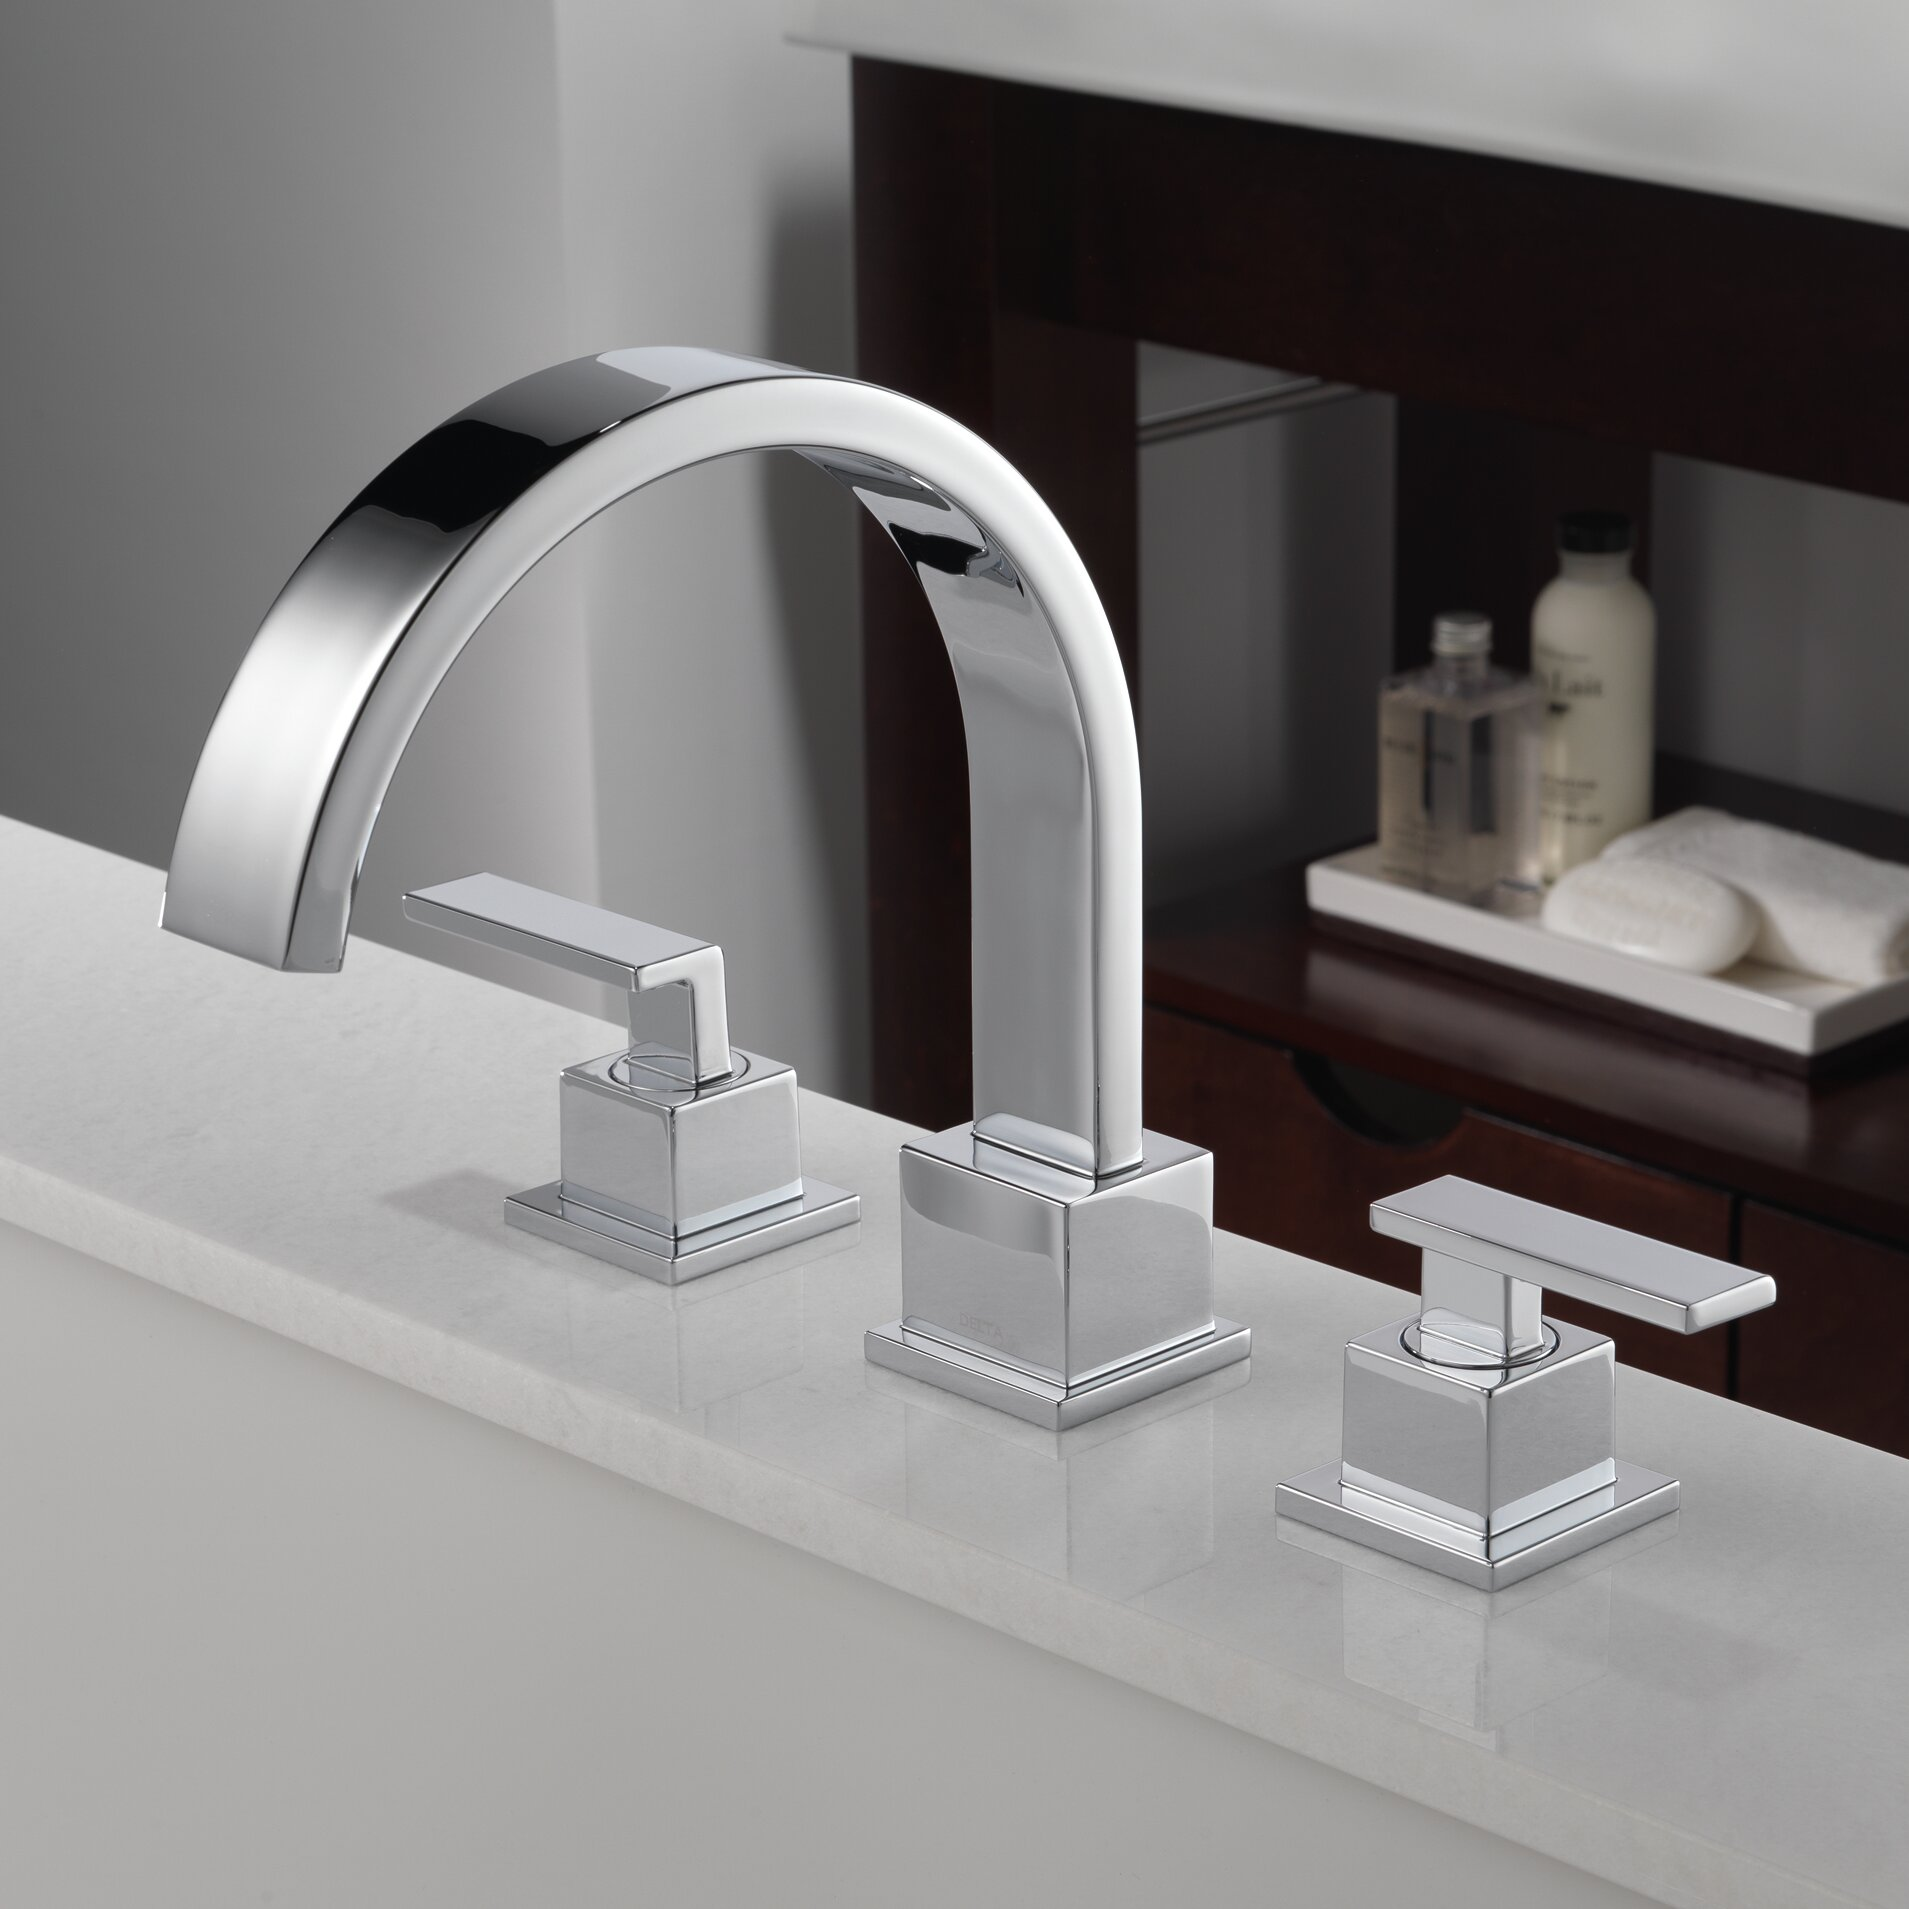 faucets valve delta finish and chrome products faucet widespread bar bathroom collection vero package towel includes quantity in shower rough